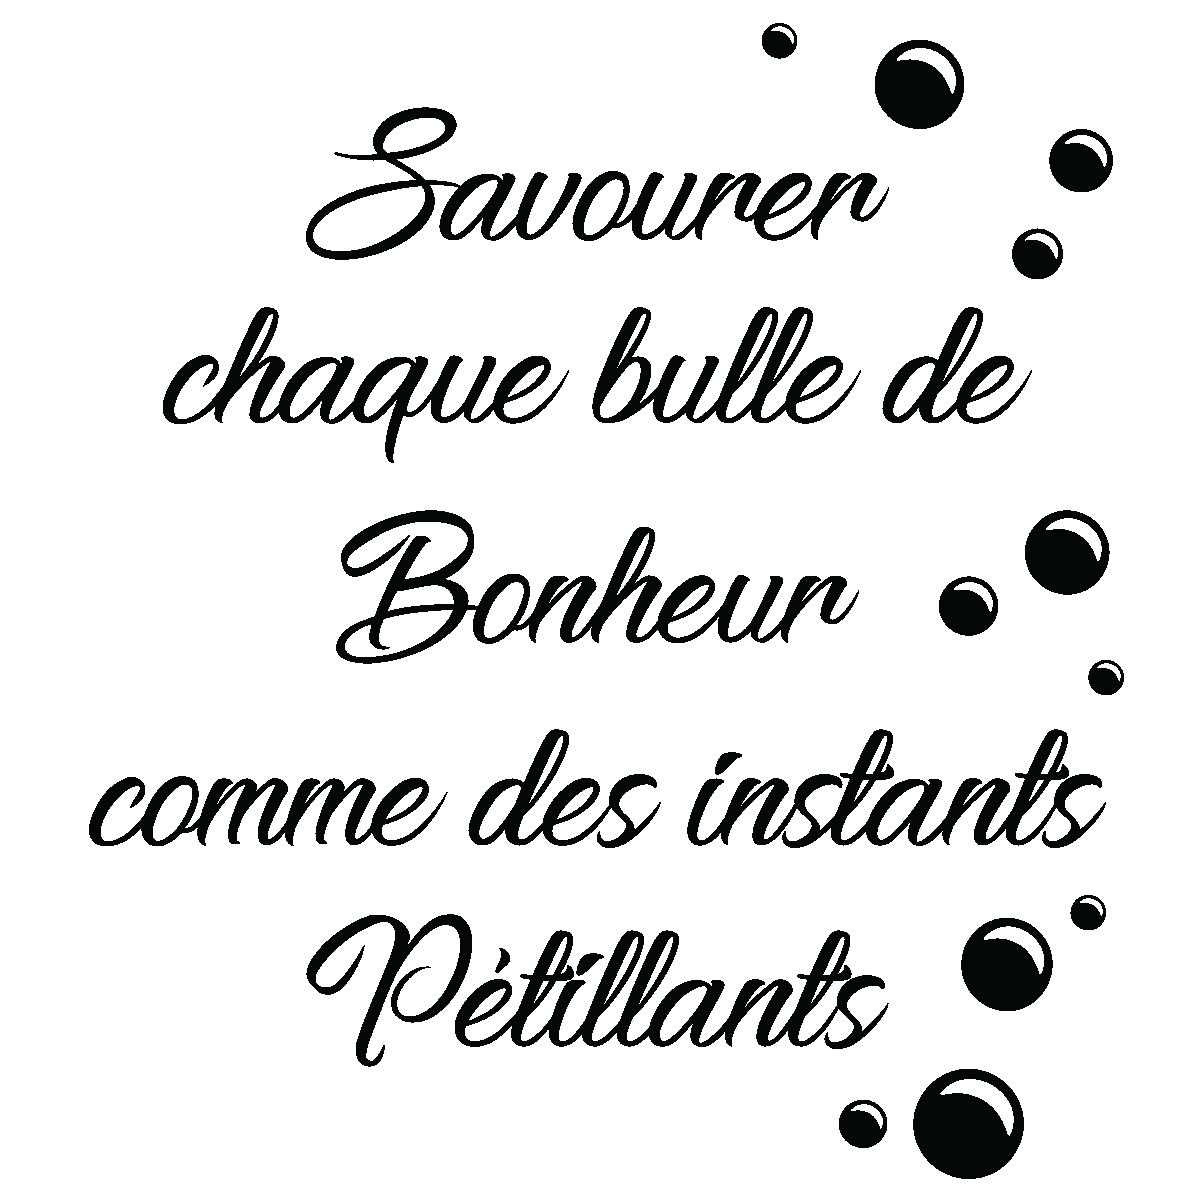 sticker citation bulle de bonheur stickers citations fran ais ambiance sticker. Black Bedroom Furniture Sets. Home Design Ideas